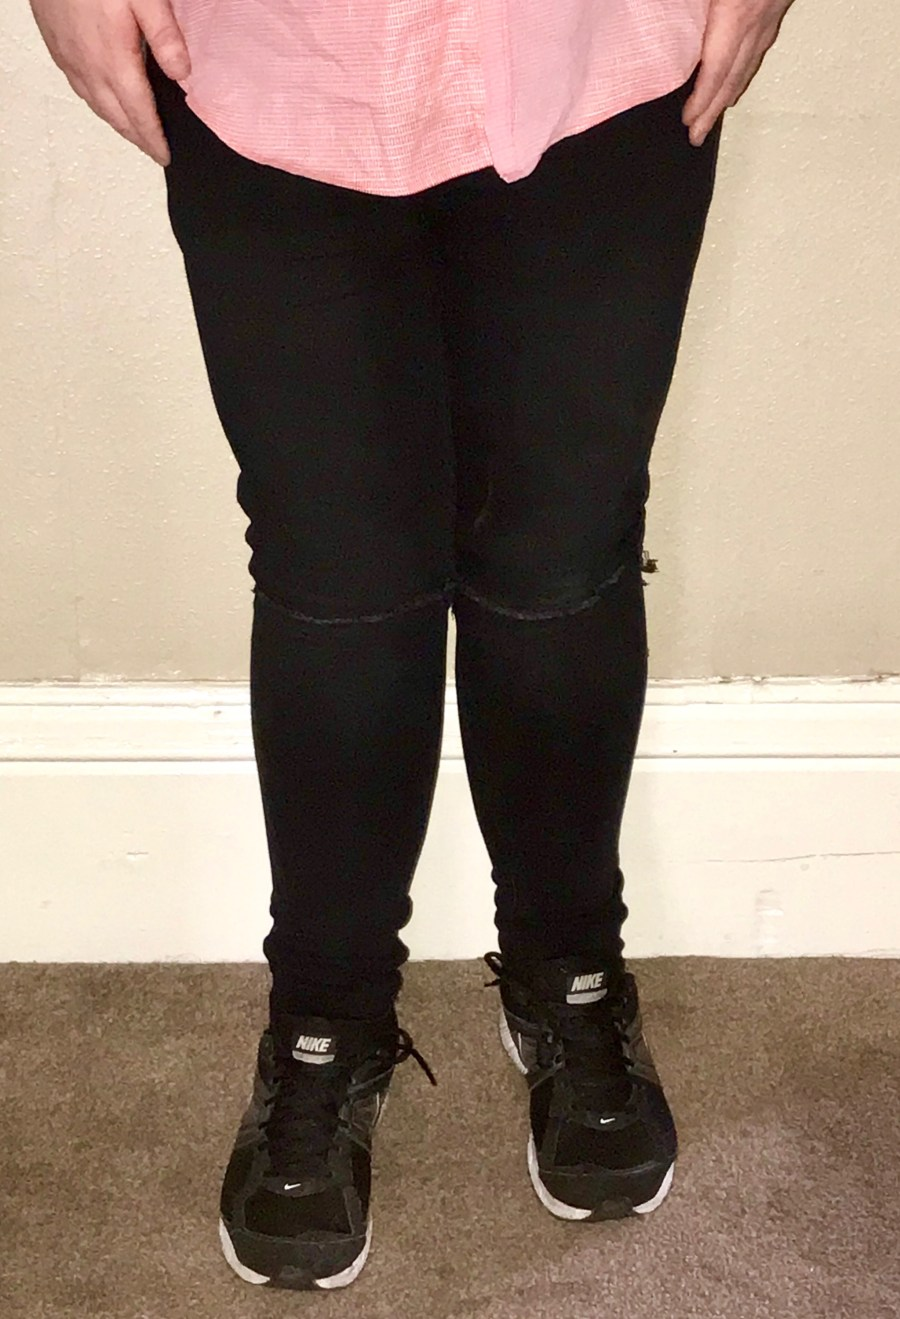 Me wearing a pair of Black skinny fit knee ripped jeans and a pair of black trainers with white soles on a brown carpet, on a light green background.